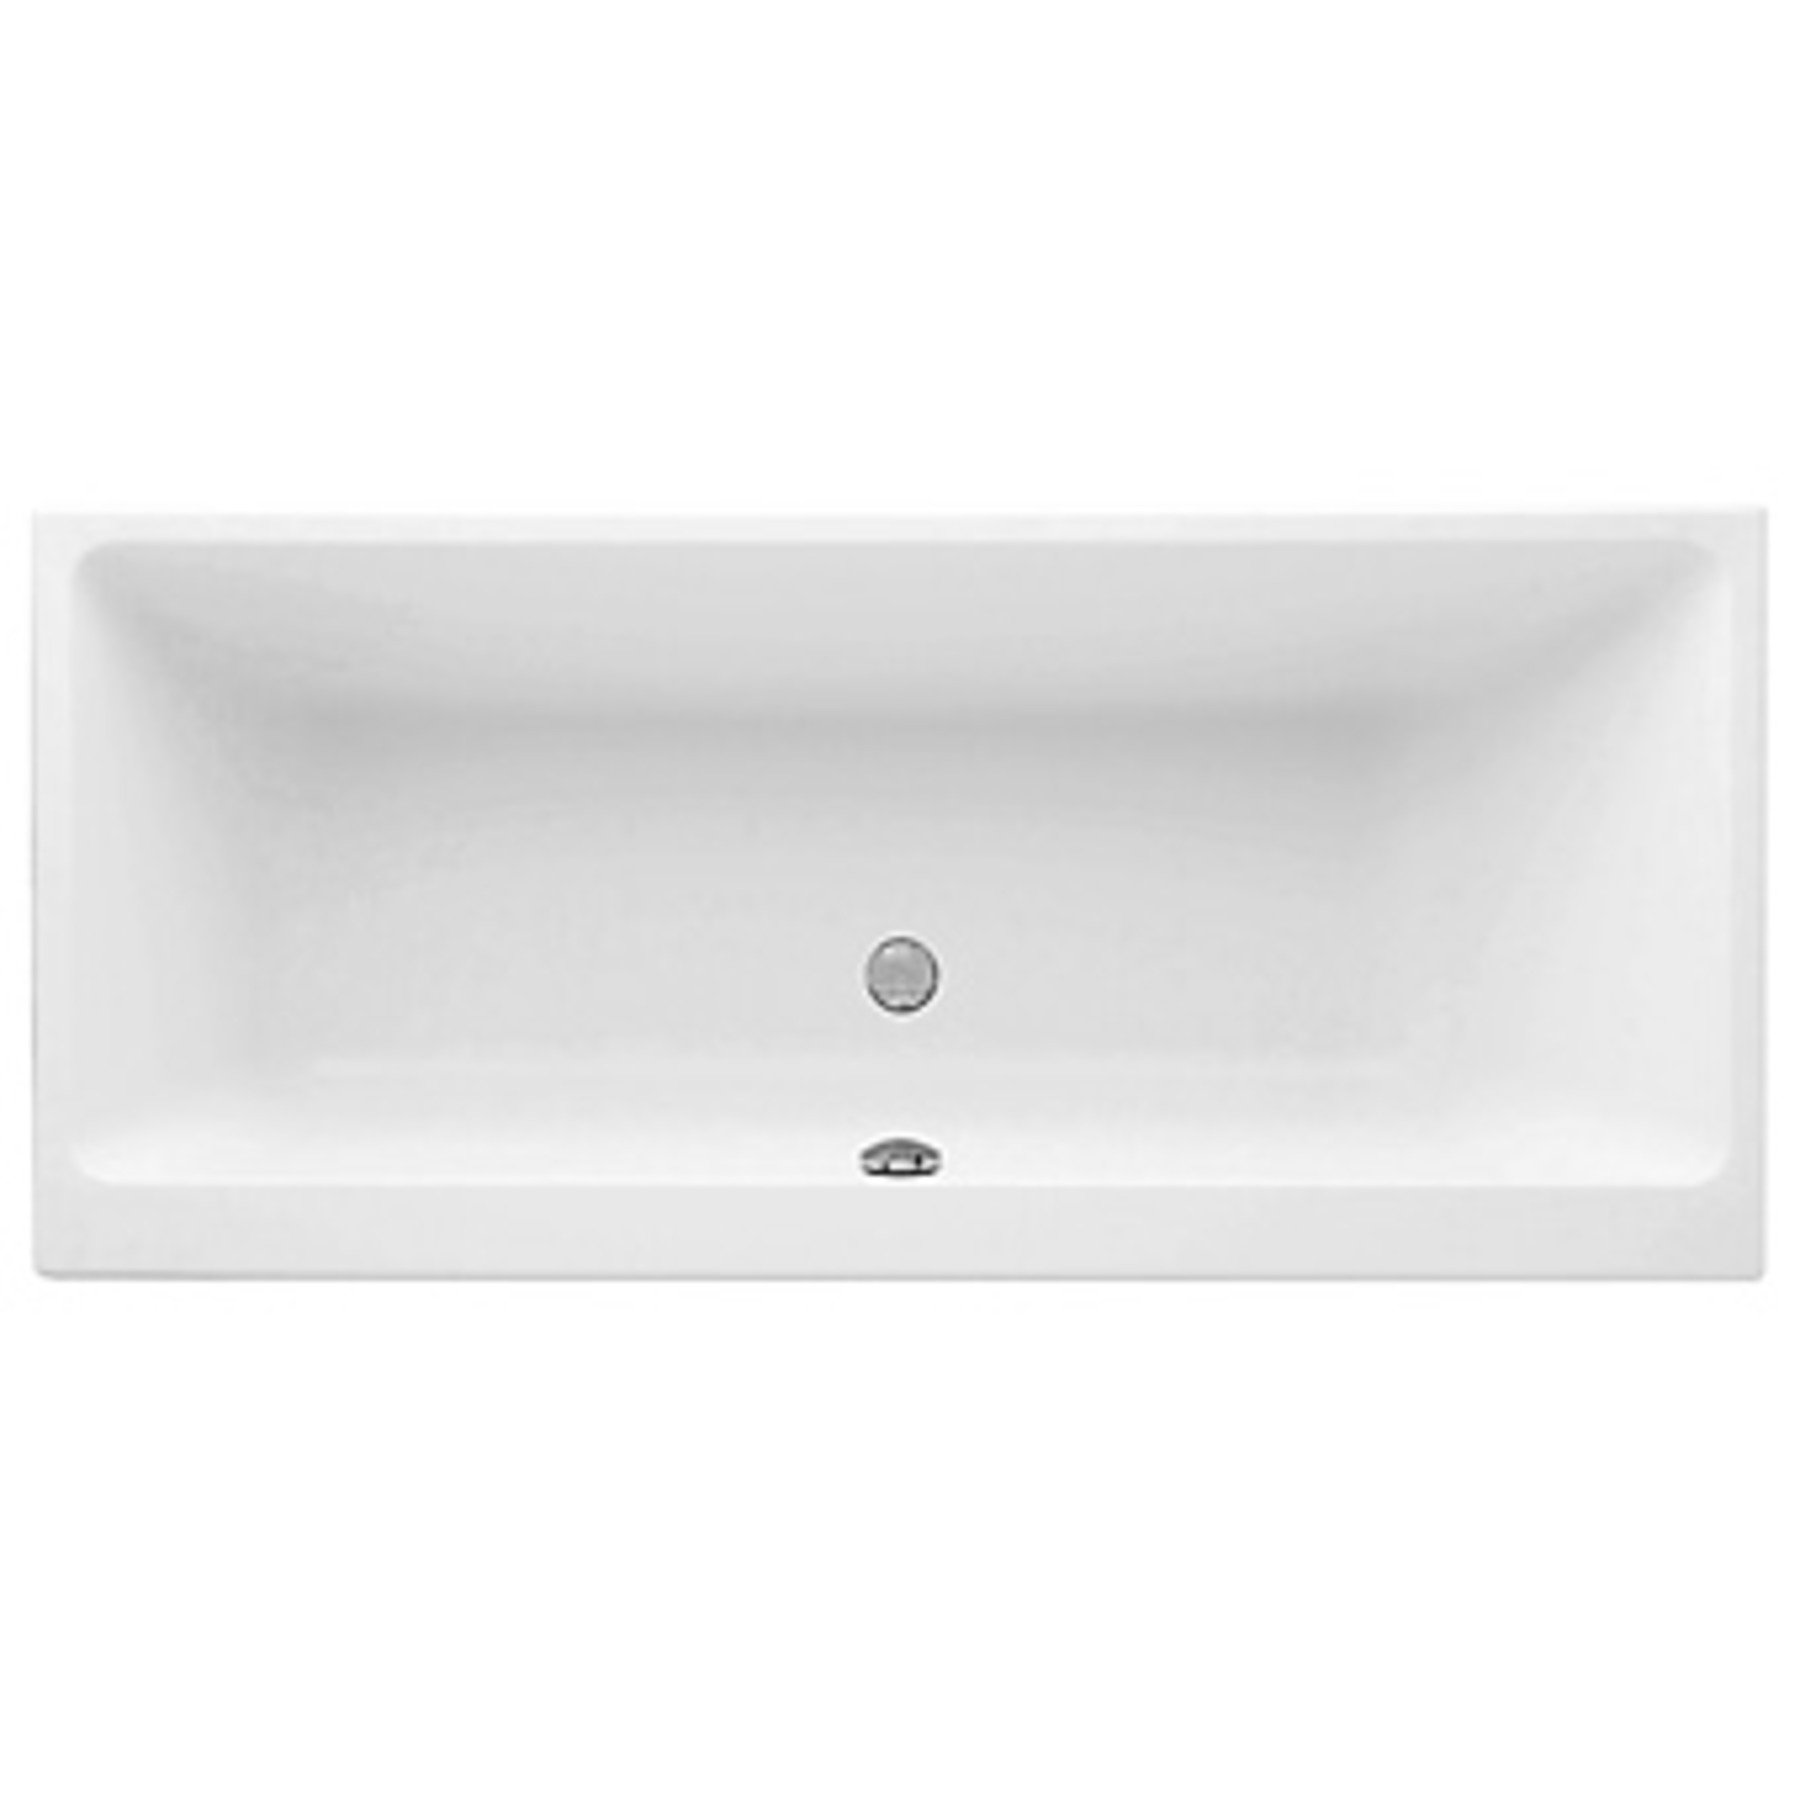 Villeroy en Boch Subway bad 170x75cm acryl wit